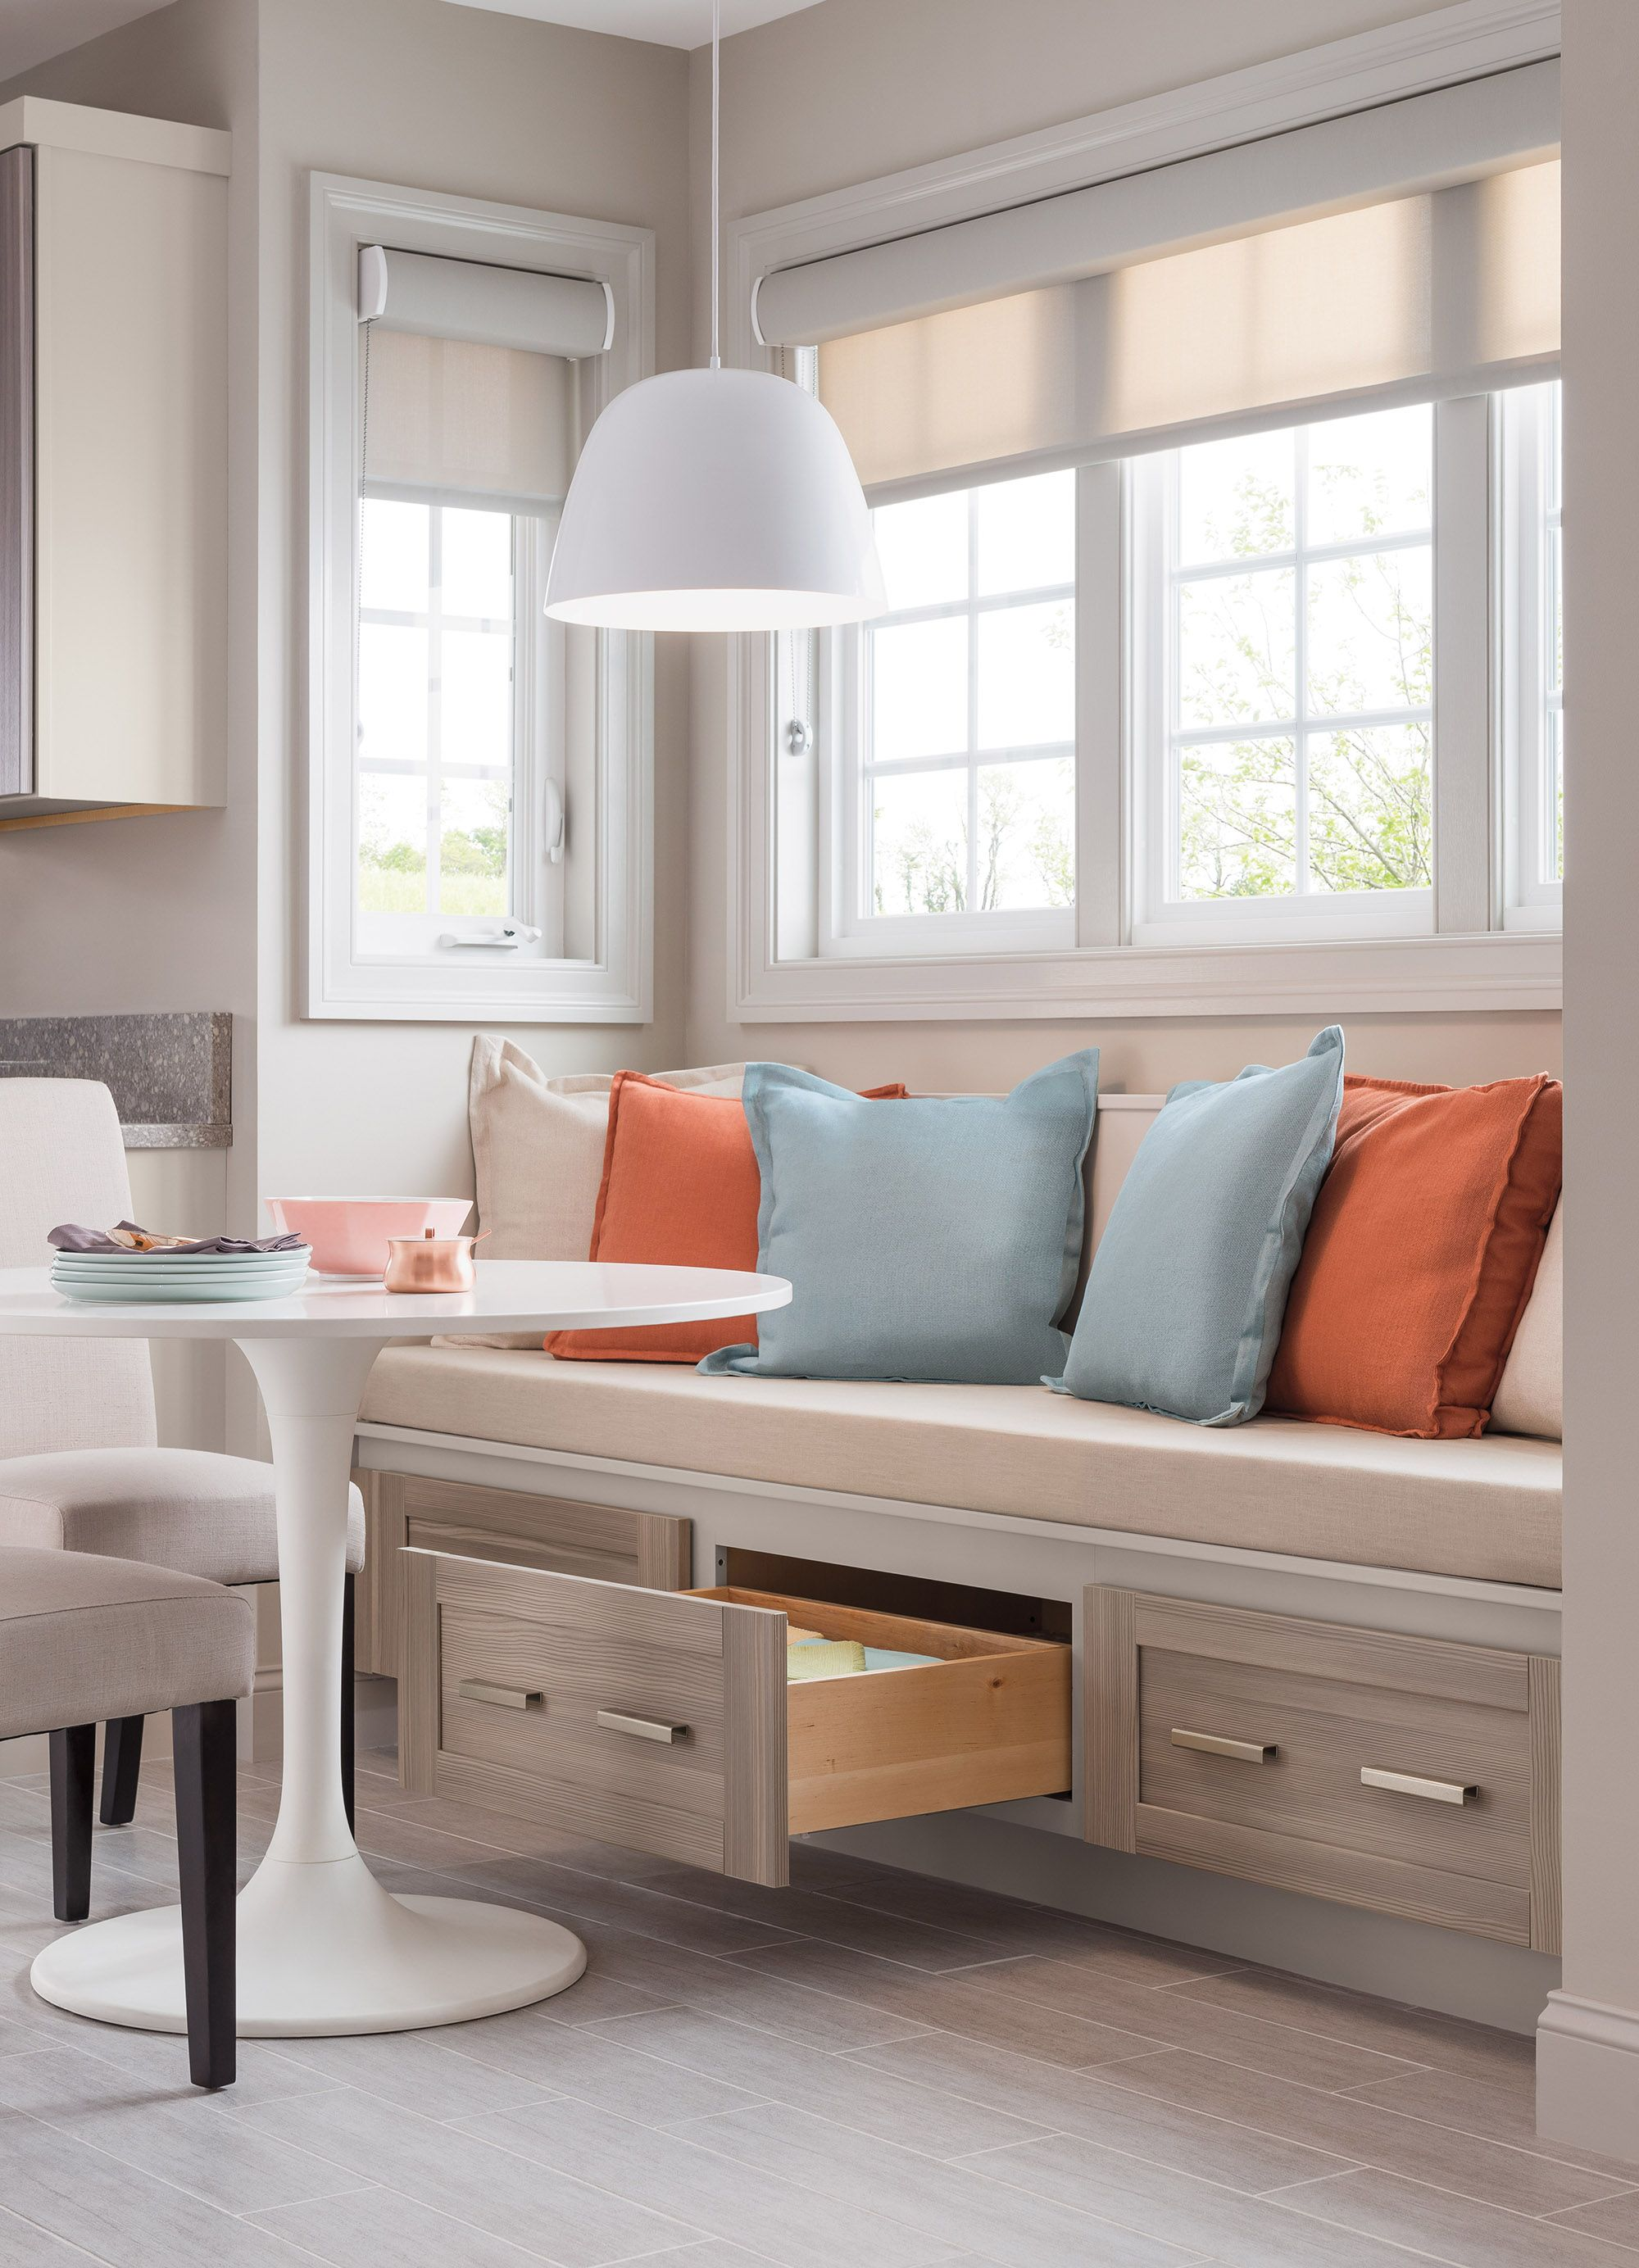 Double up with storage AND seating More  The Bee Keepers